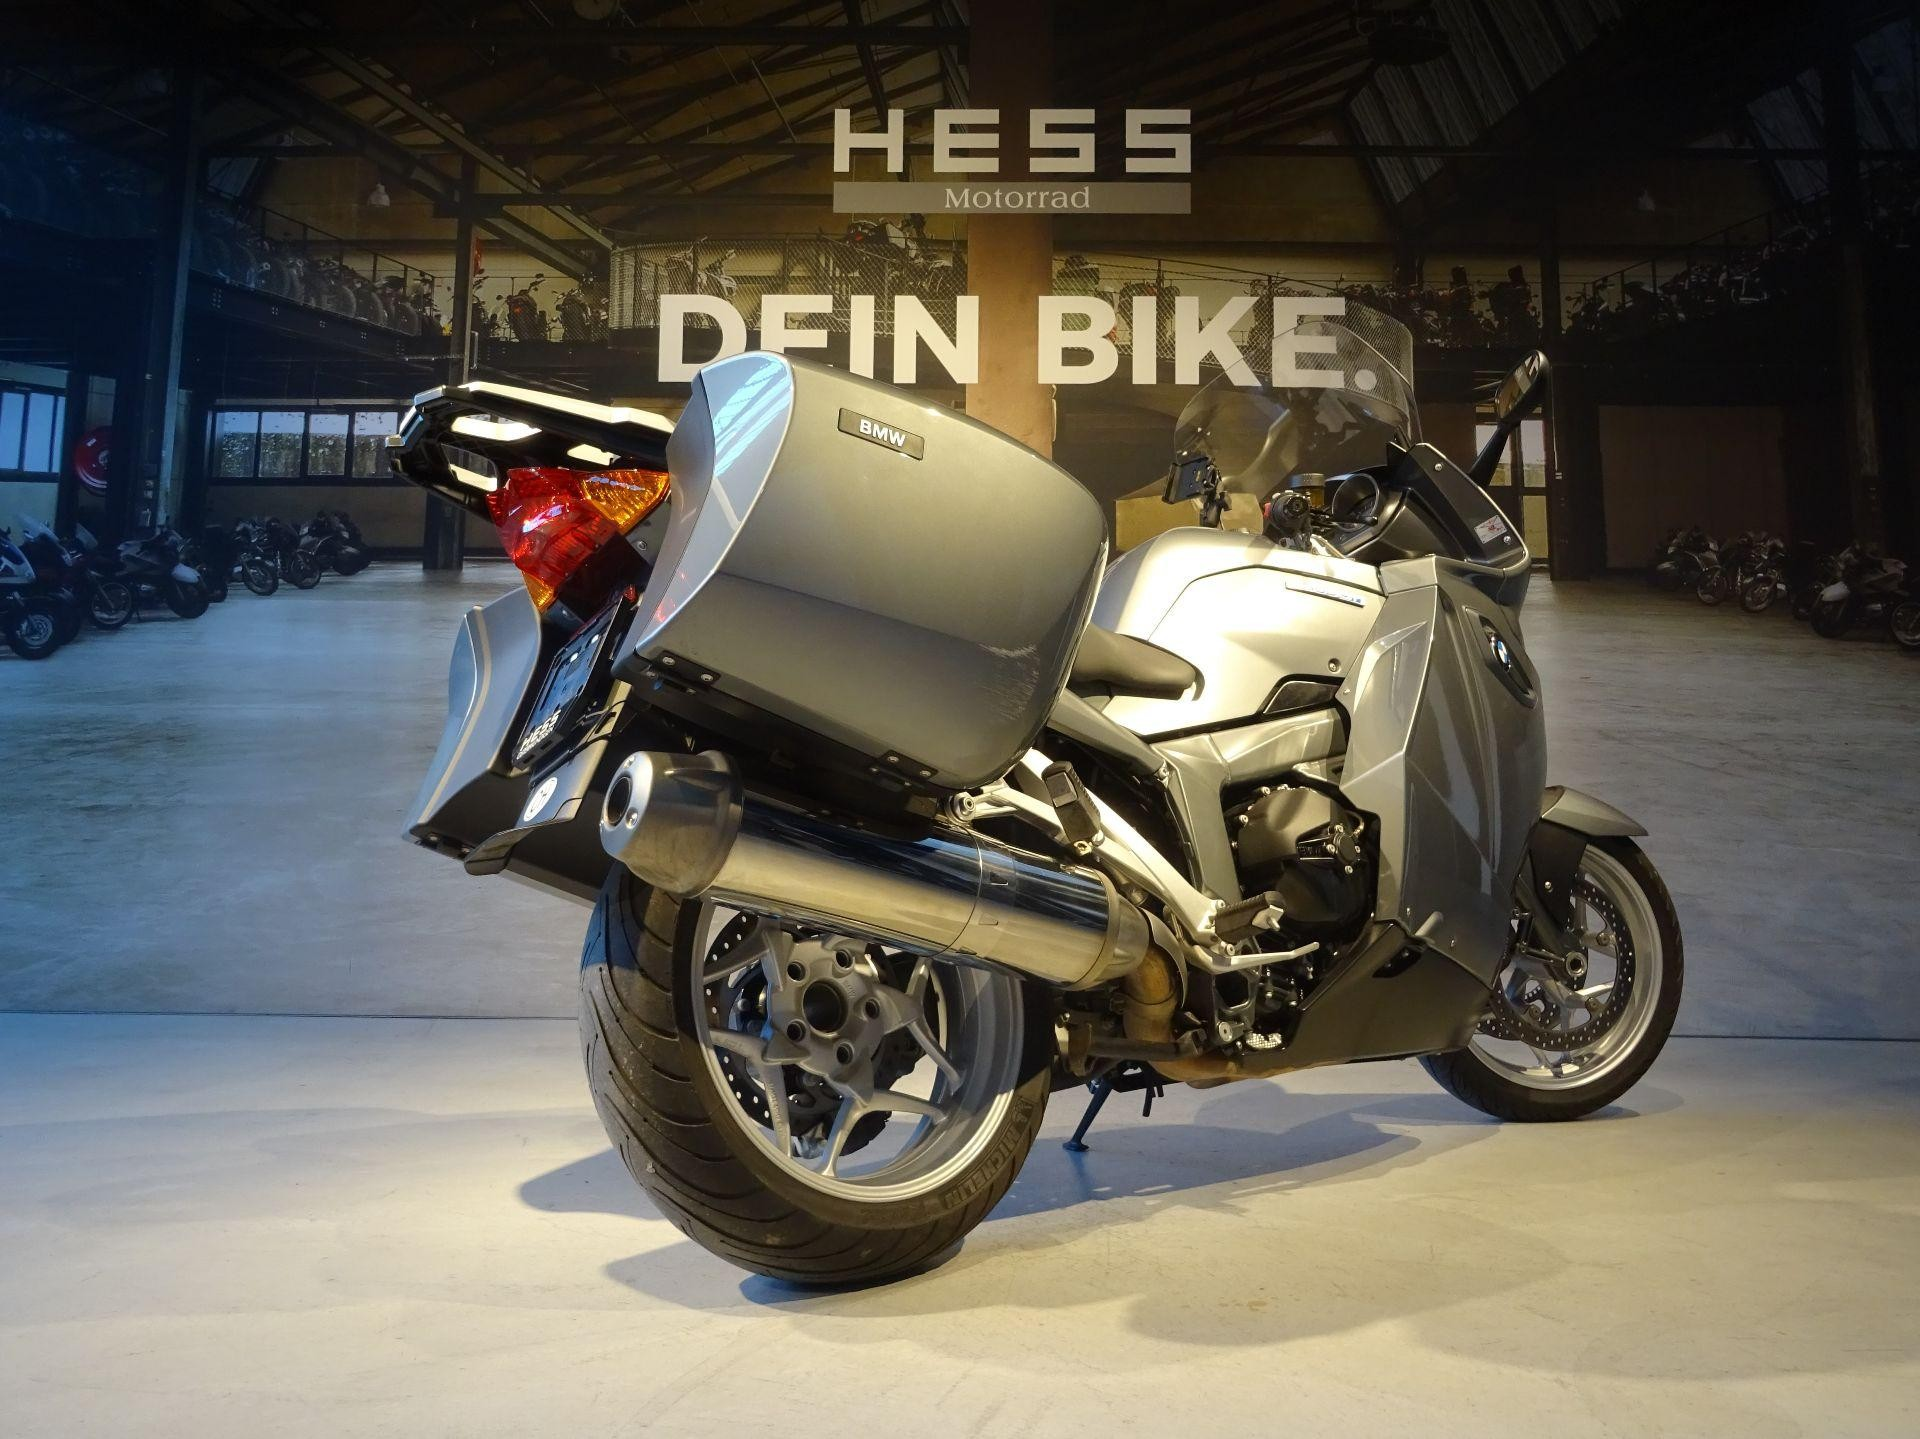 moto occasions acheter bmw k 1300 gt abs hess motorrad. Black Bedroom Furniture Sets. Home Design Ideas